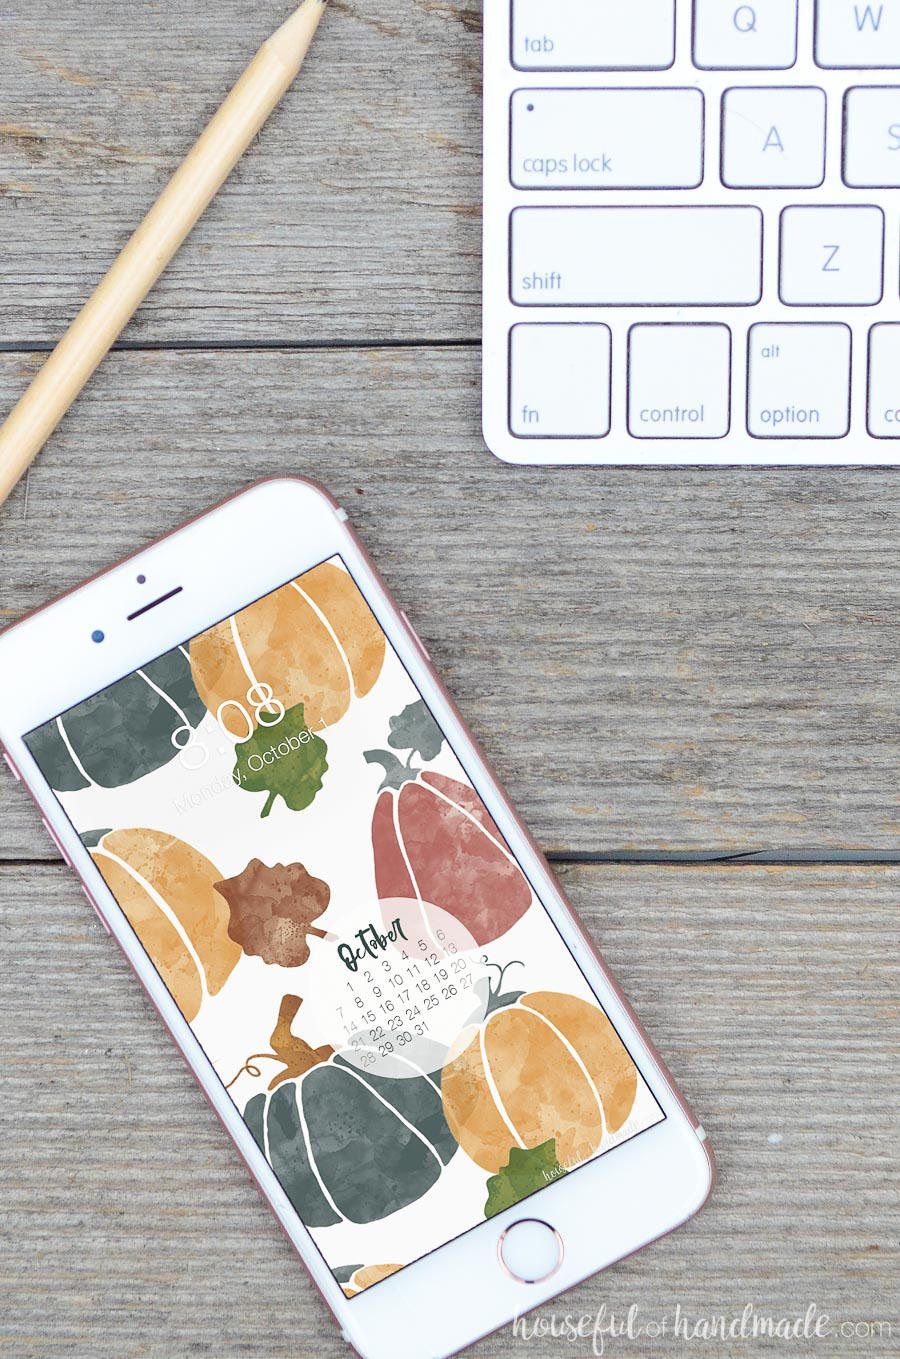 White smartphone with the pumpkin print free digital background for October on the lock screen.